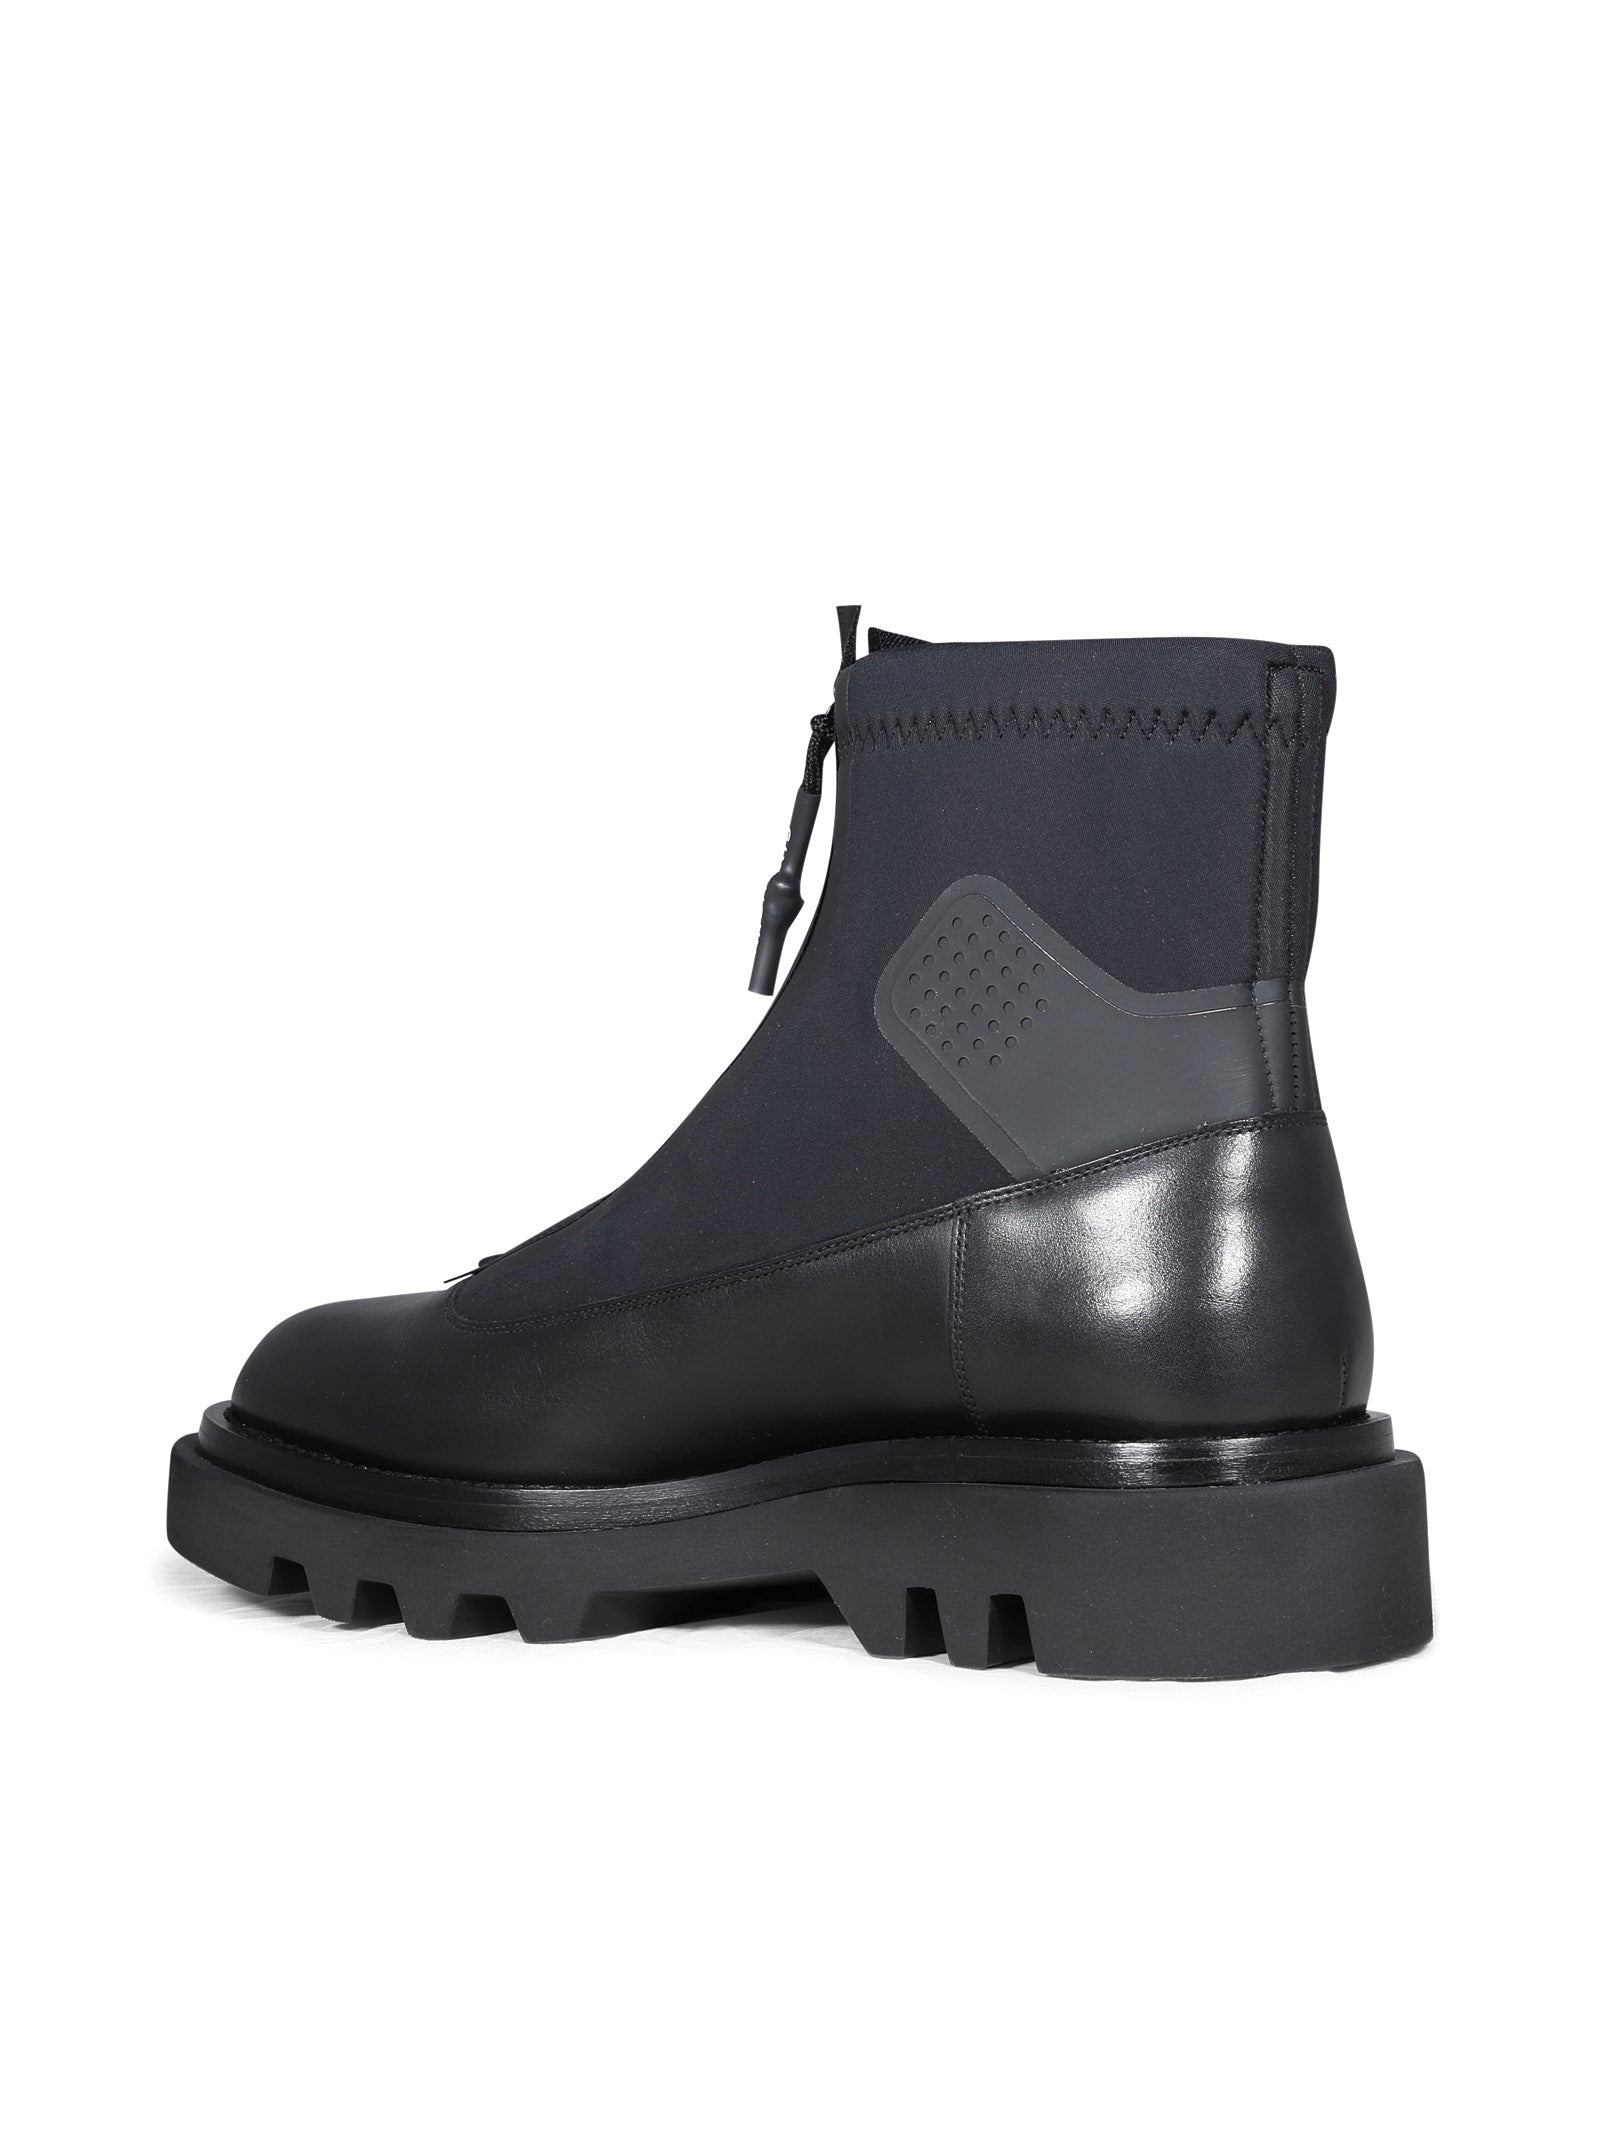 DERBY COMBAT LEATHER AND NEOPRENE BOOTS